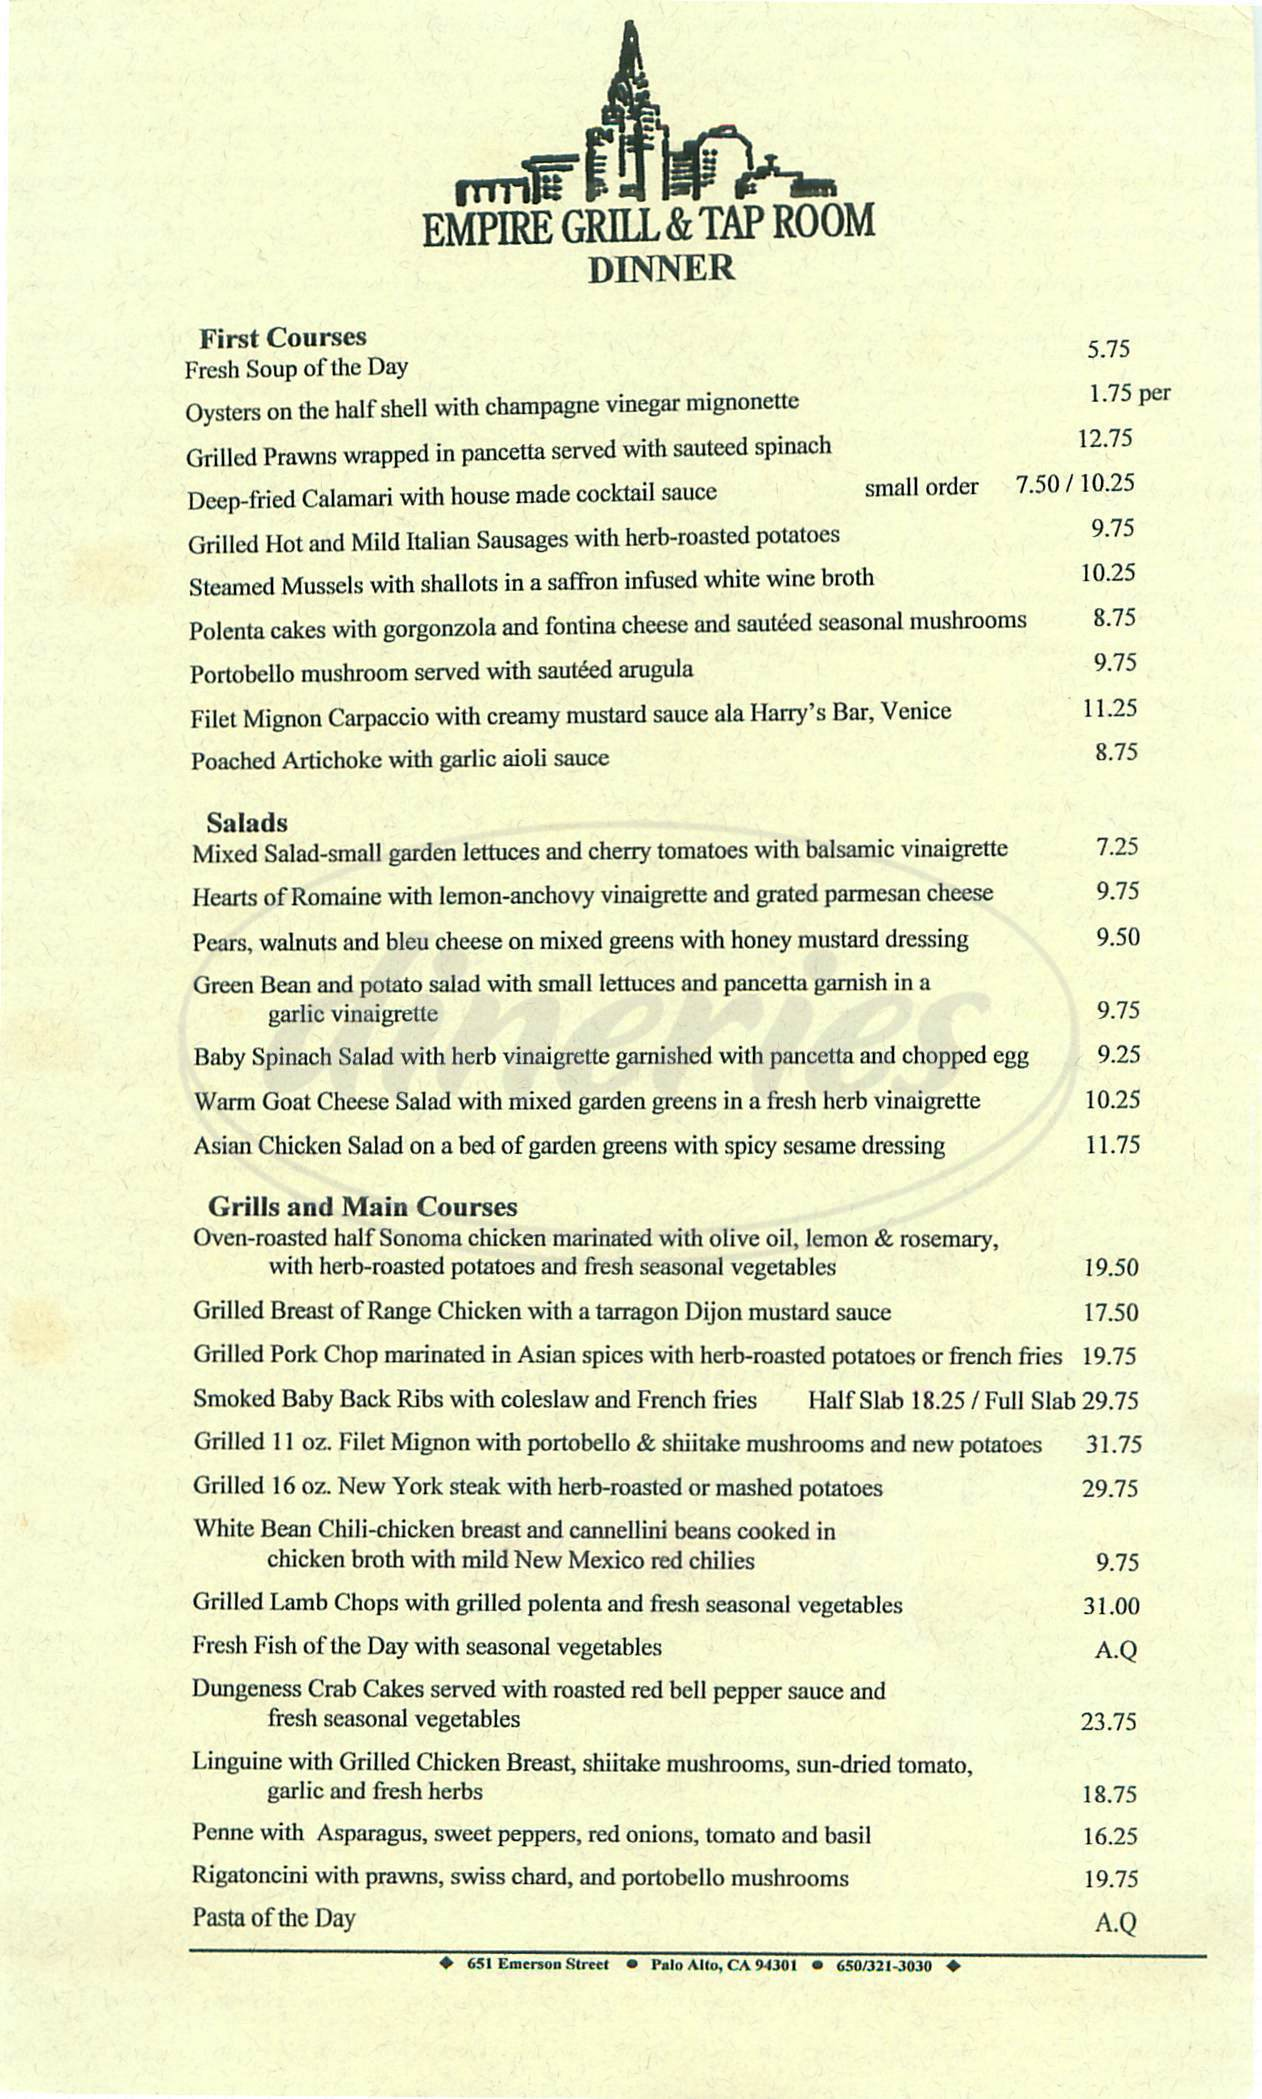 menu for Empire Grill & Tap Room